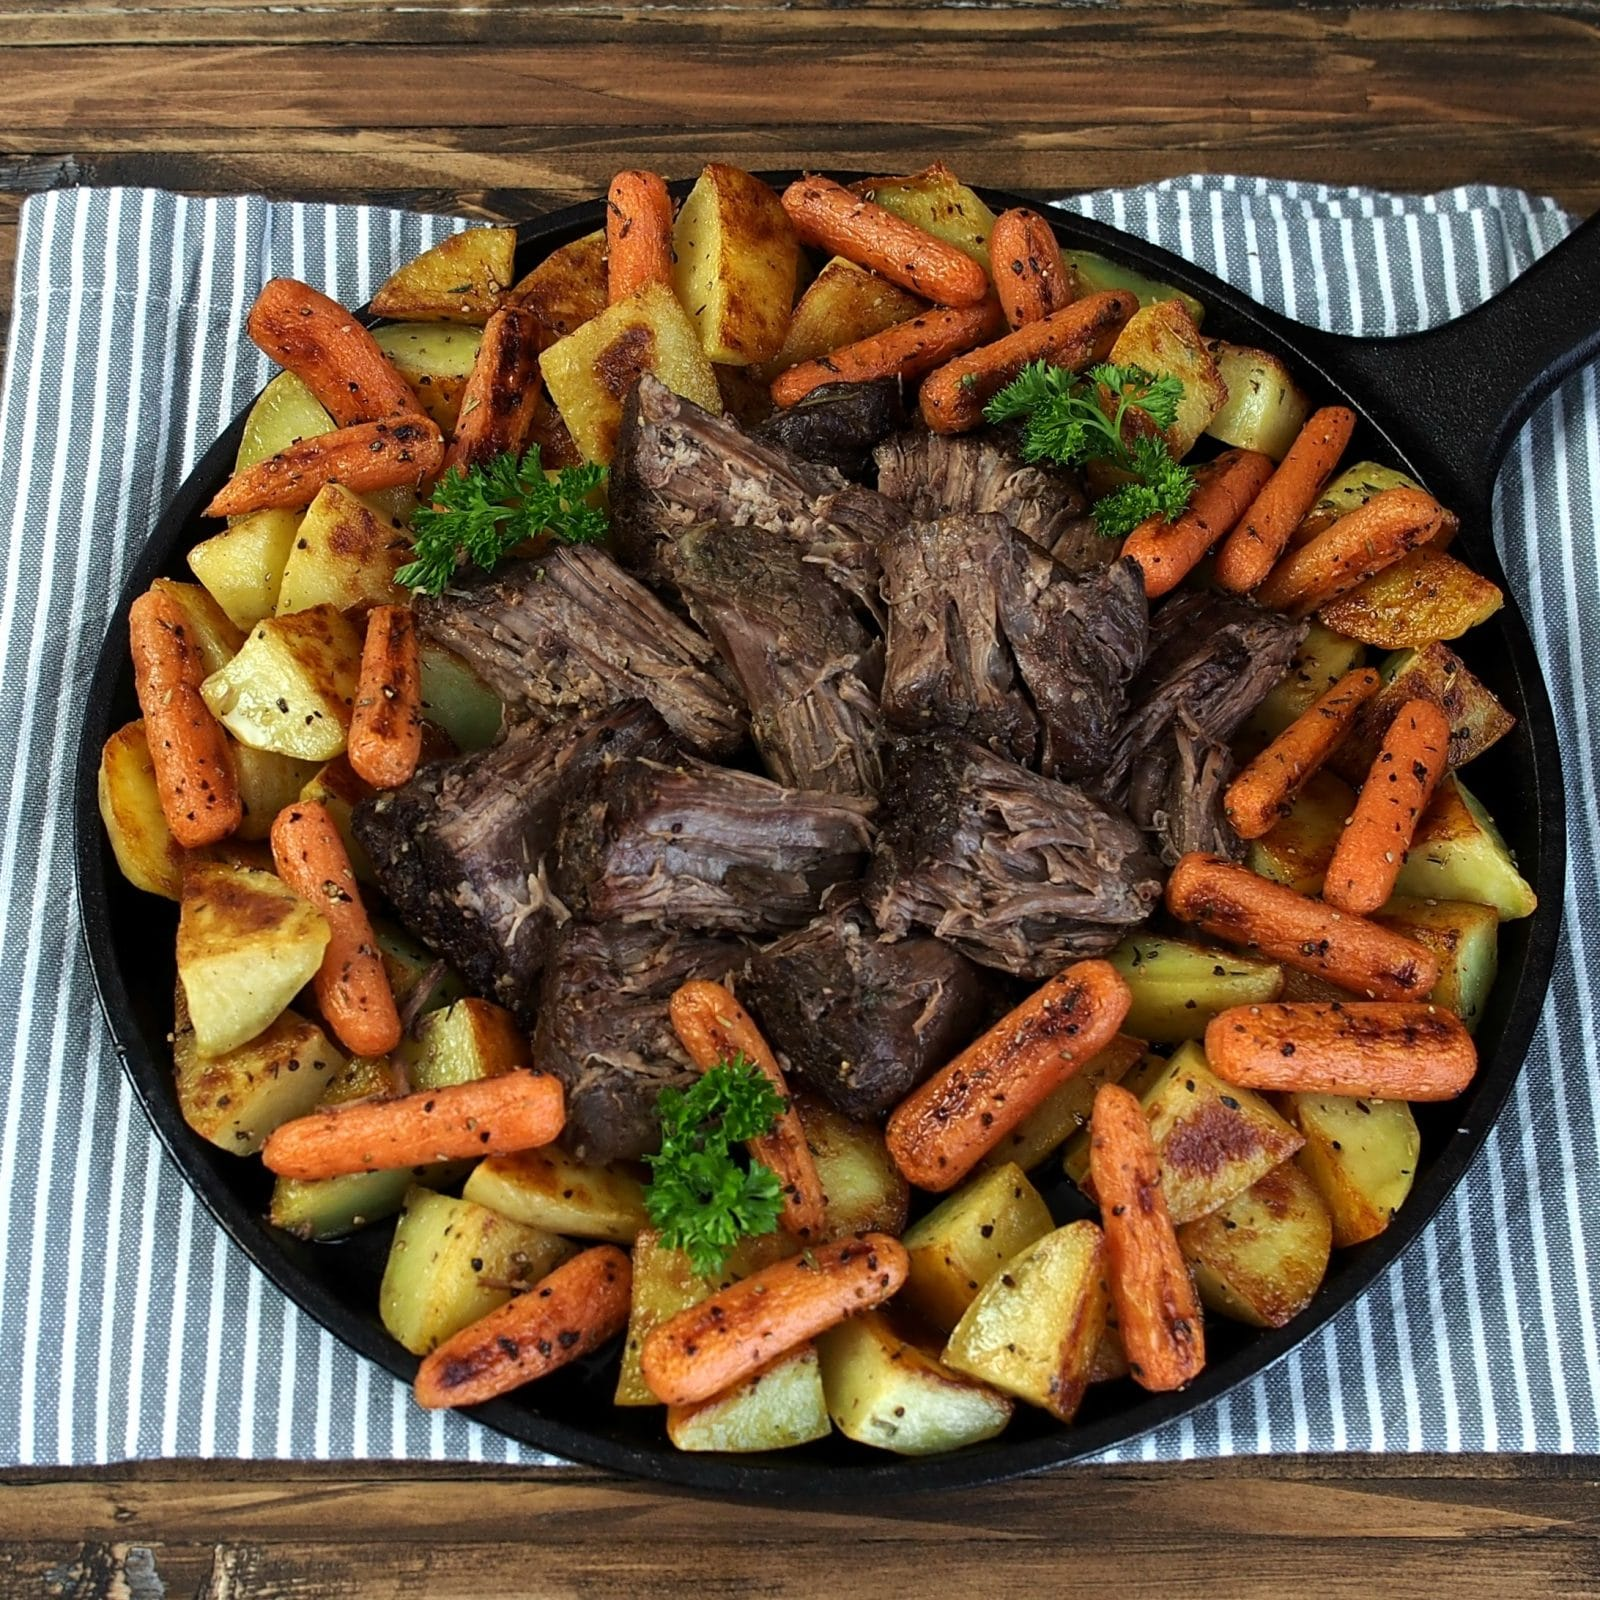 Perfect Pot Roast with Best-Ever Pot Roast Gravy is simply the BEST pot roast and pot roast gravy - ever! THIS is the pot roast & gravy dreams are made of. Simply Sated